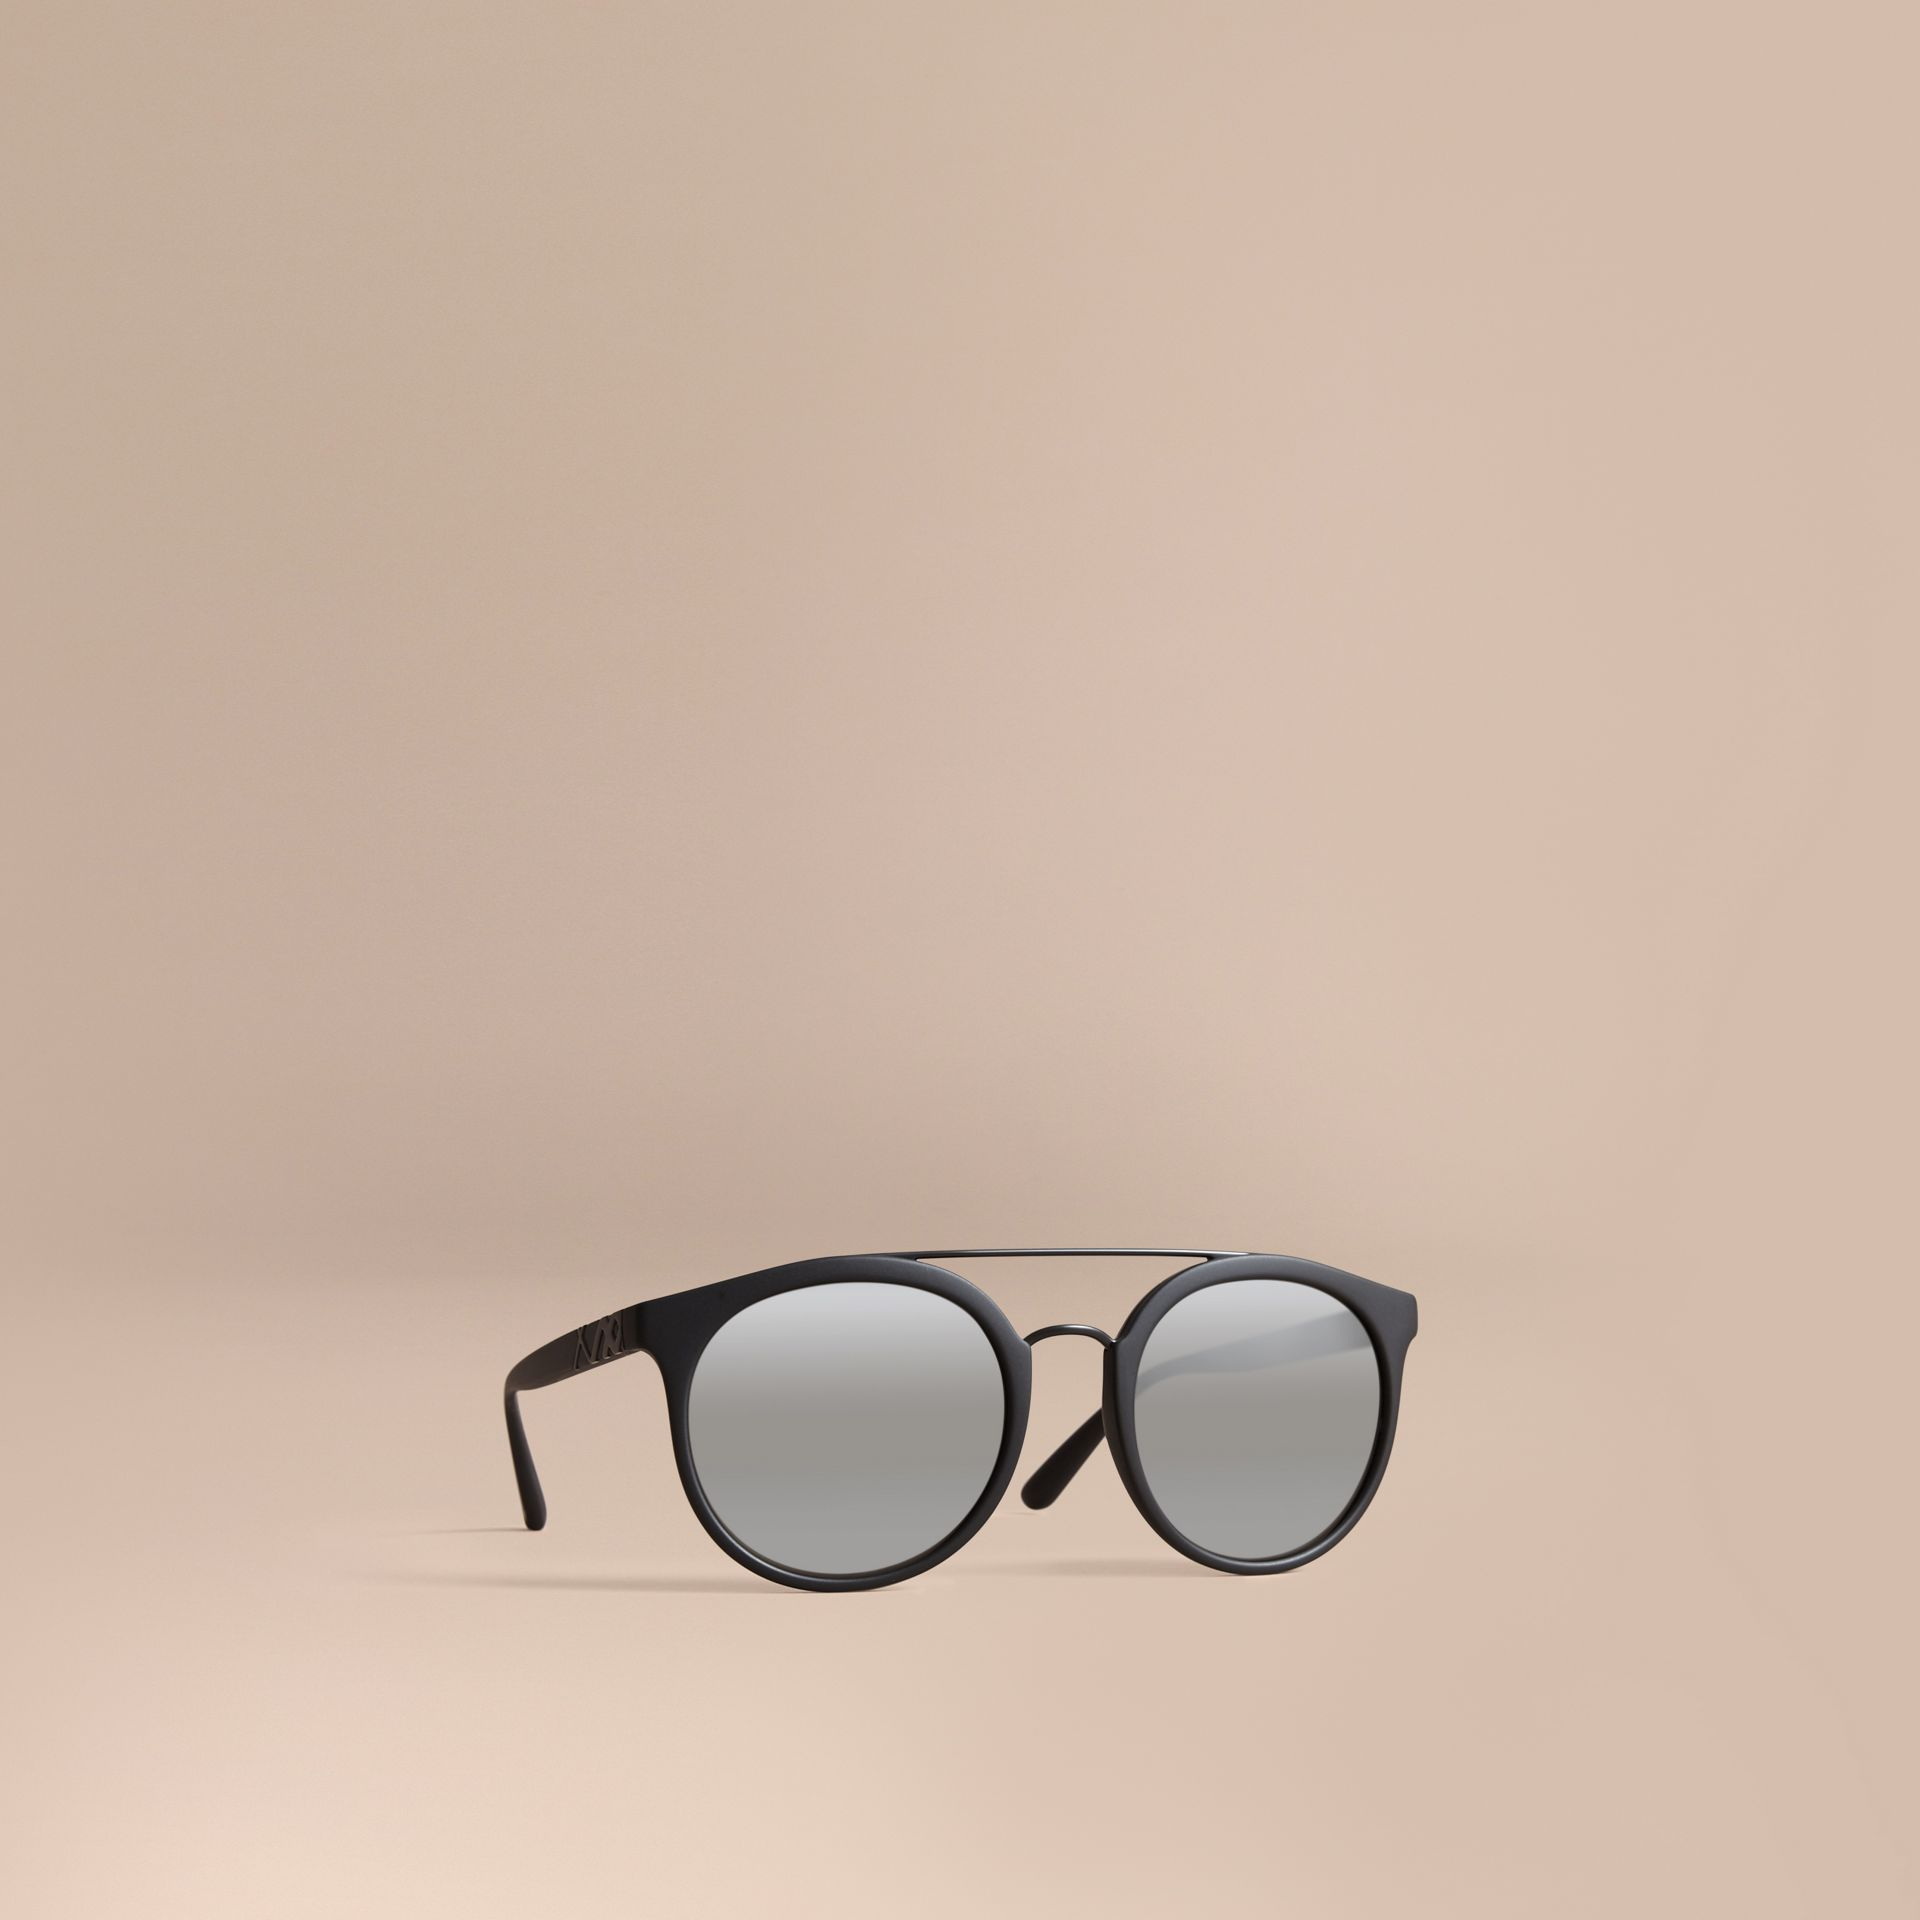 Top Bar Round Frame Sunglasses in Black - Men | Burberry - gallery image 0